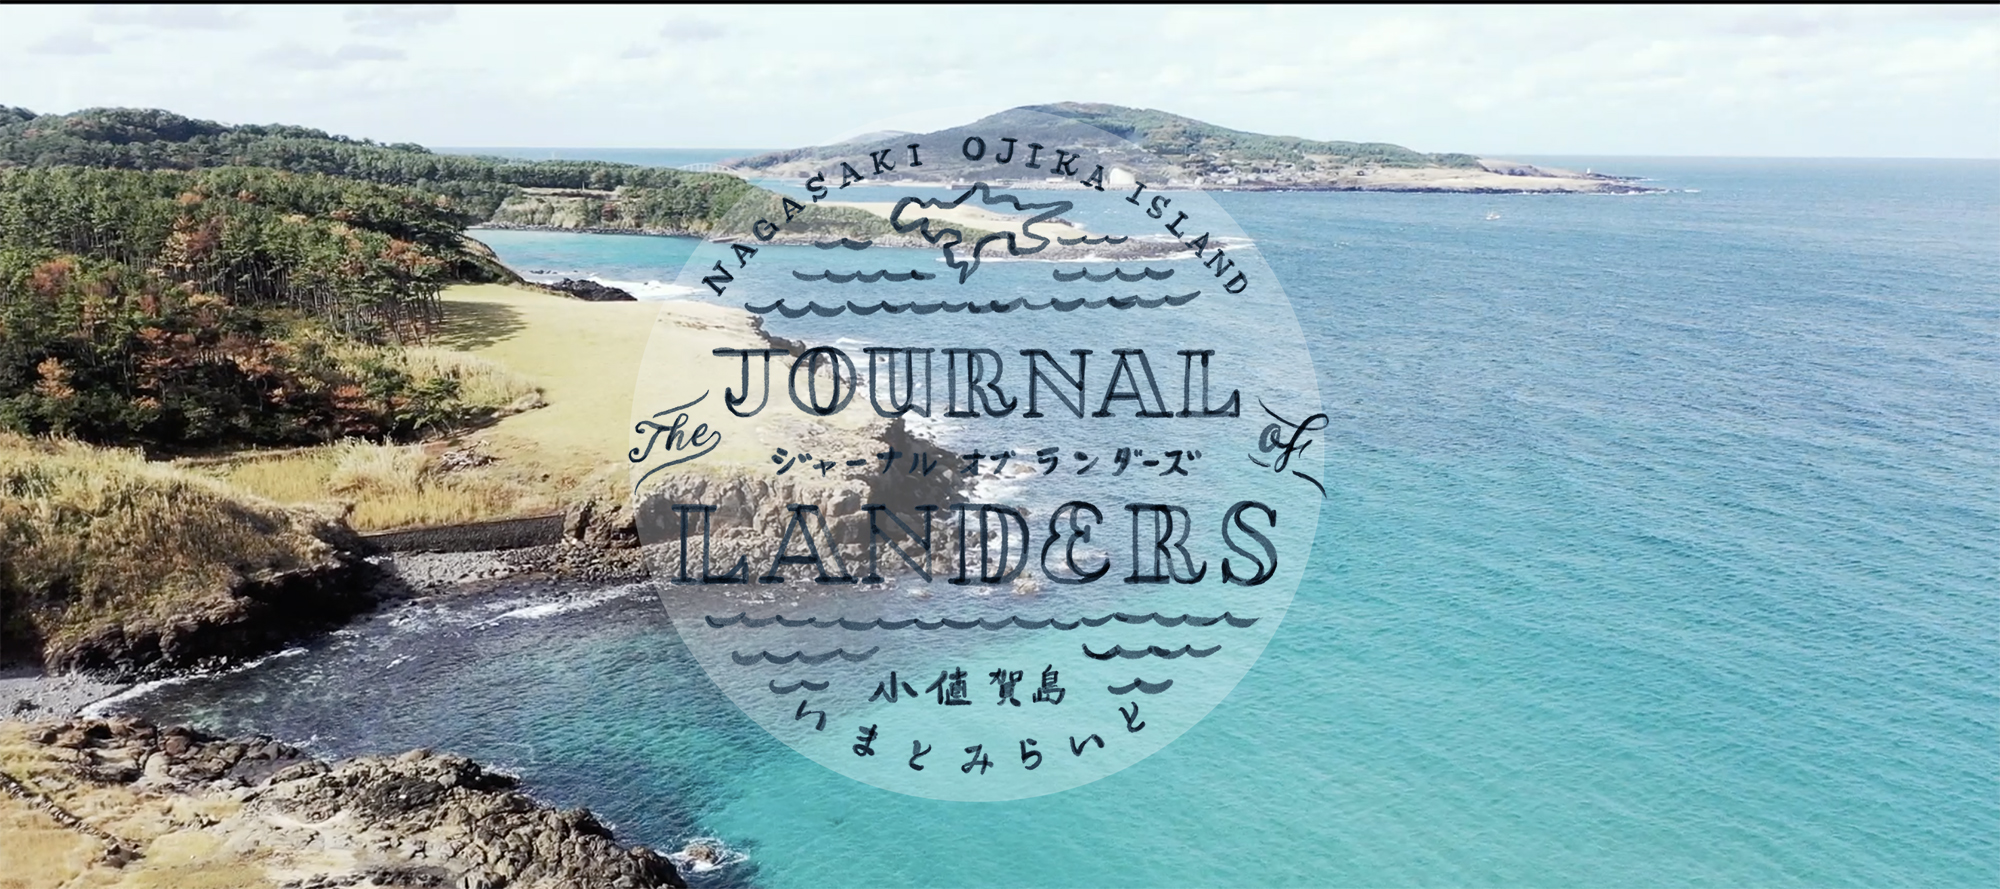 The Journal of Landers